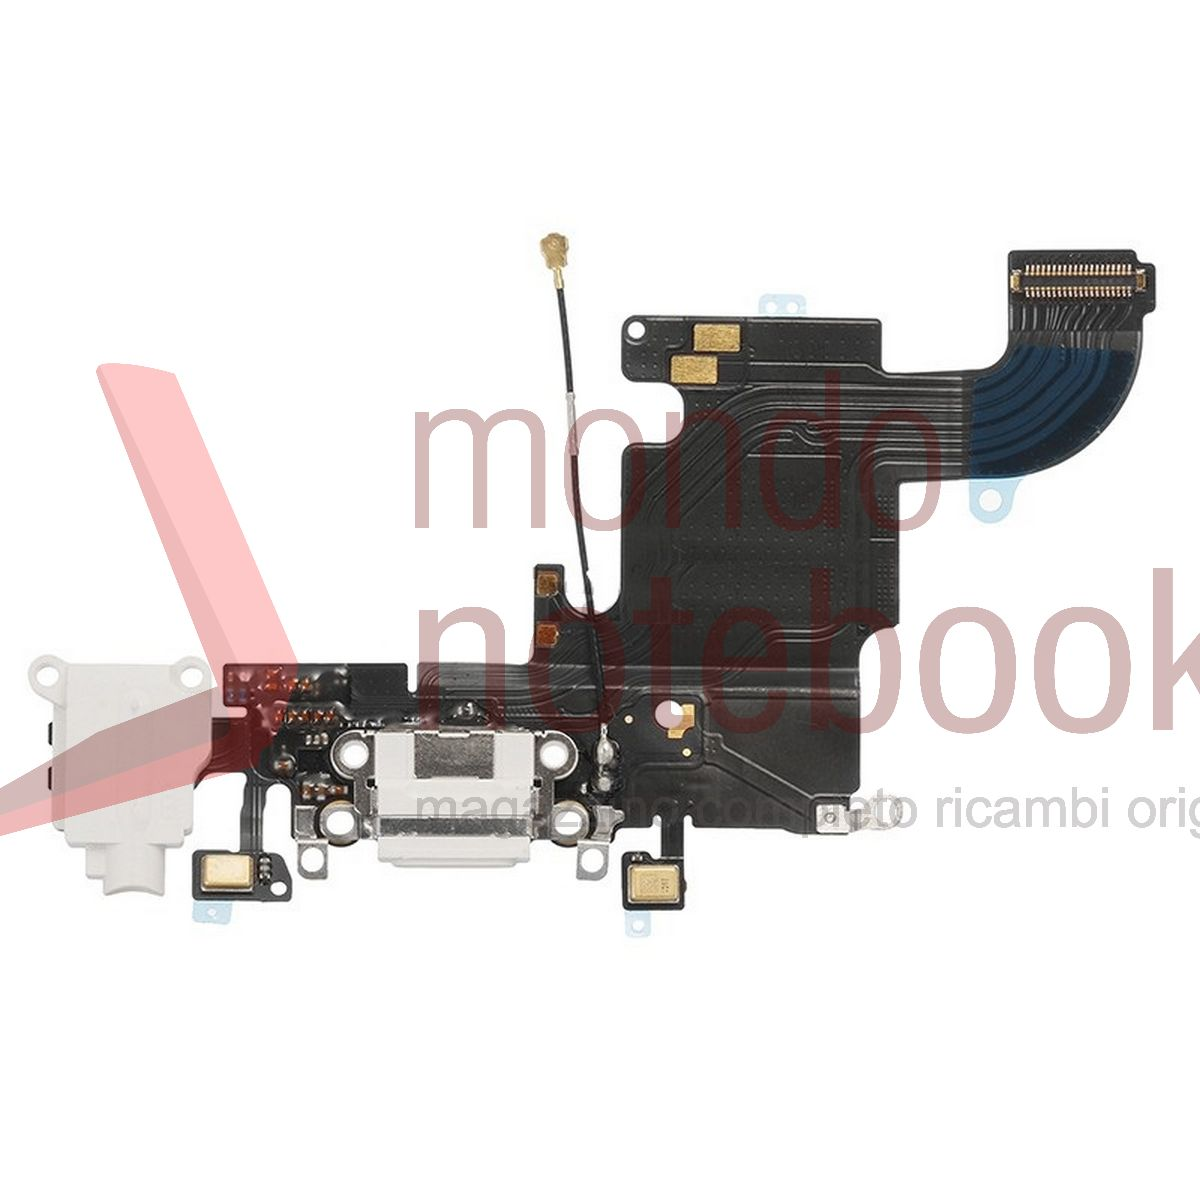 https://www.mondonotebook.it/3885/apple-iphone-6s-charging-port-flex-cable-ribbon-replacement-light-gray-grade-s-.jpg